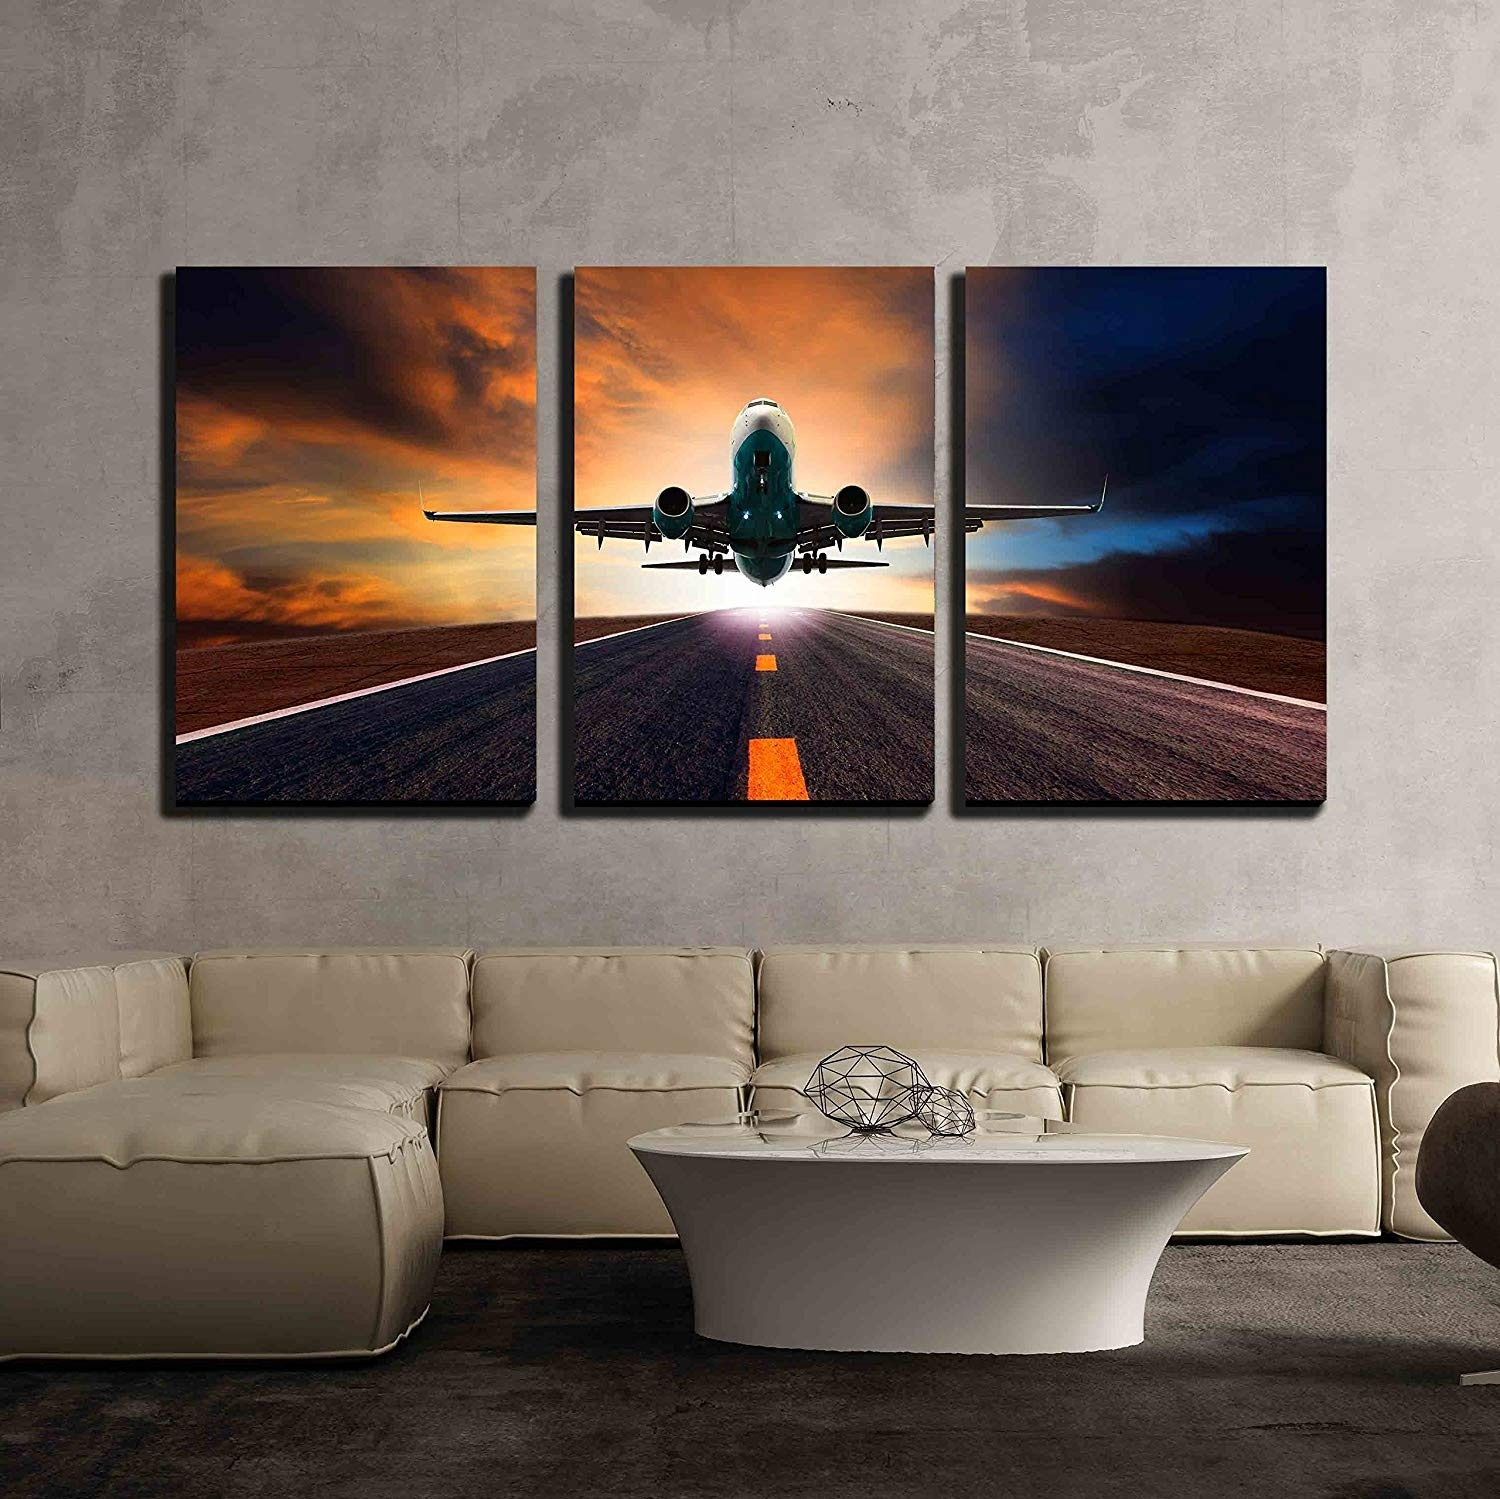 Amazon: Wall26 - 3 Piece Canvas Wall Art - Passenger Jet Plane in Airplane Wall Art (Image 13 of 20)